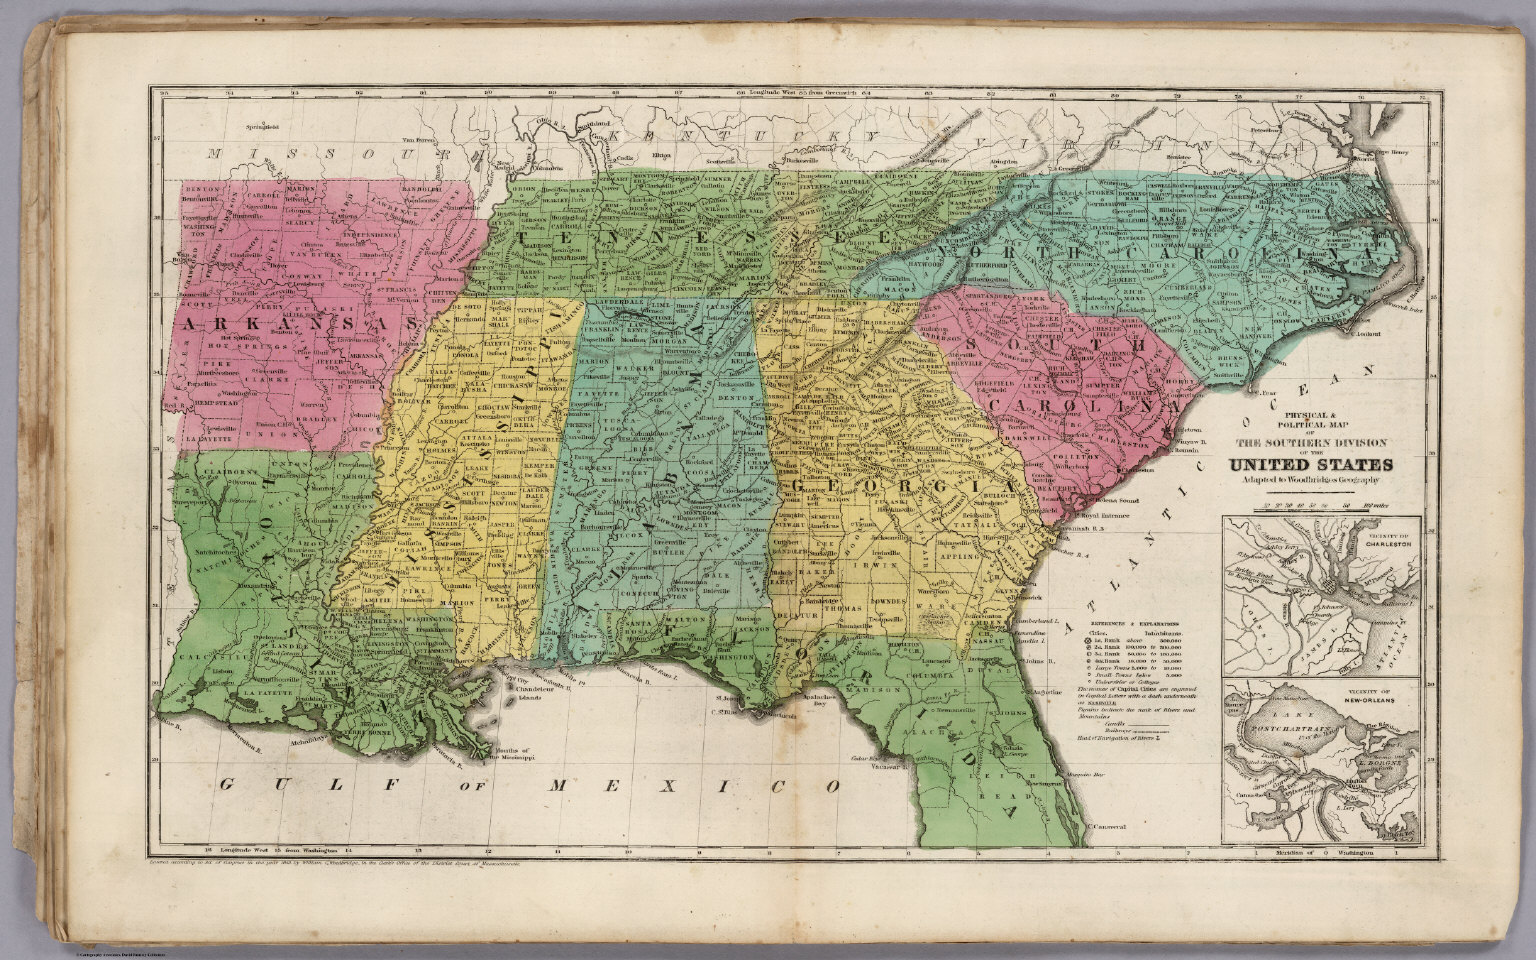 A Political Map Of The United States.Political Map Of The Southern Division Of The United States David